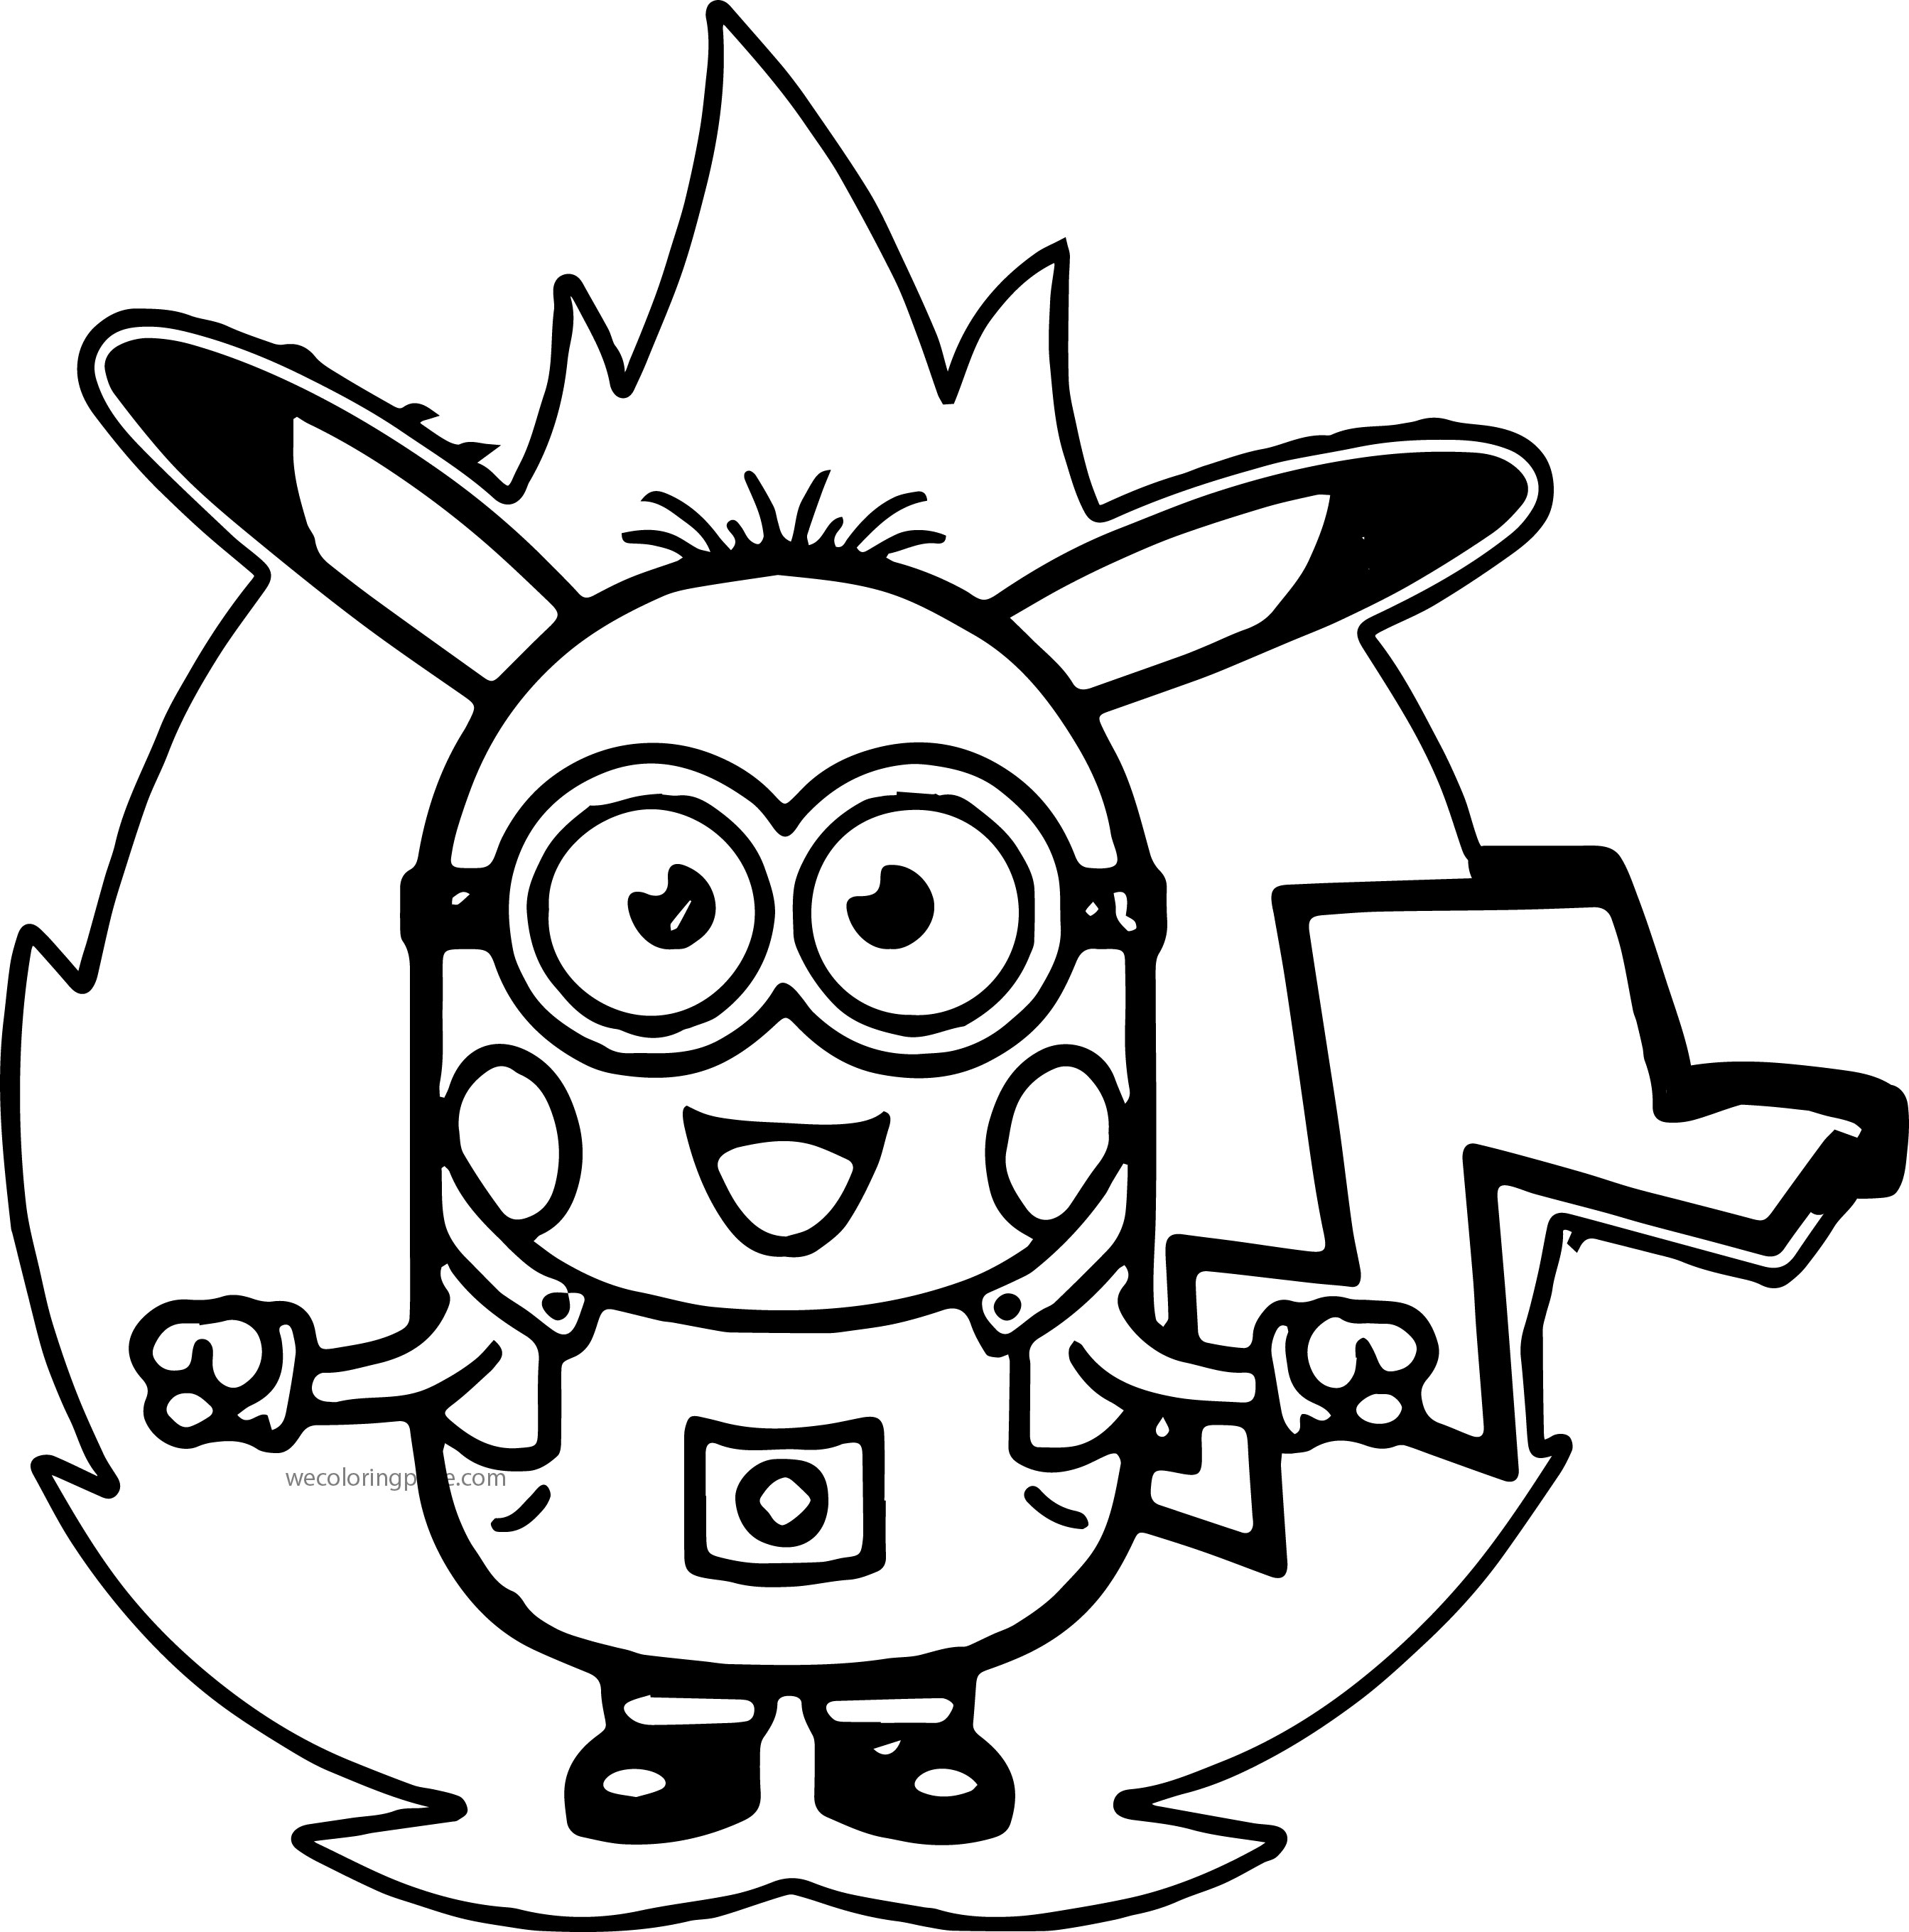 minion pokemon coloring pages wecoloringpage - Minion Coloring Pages